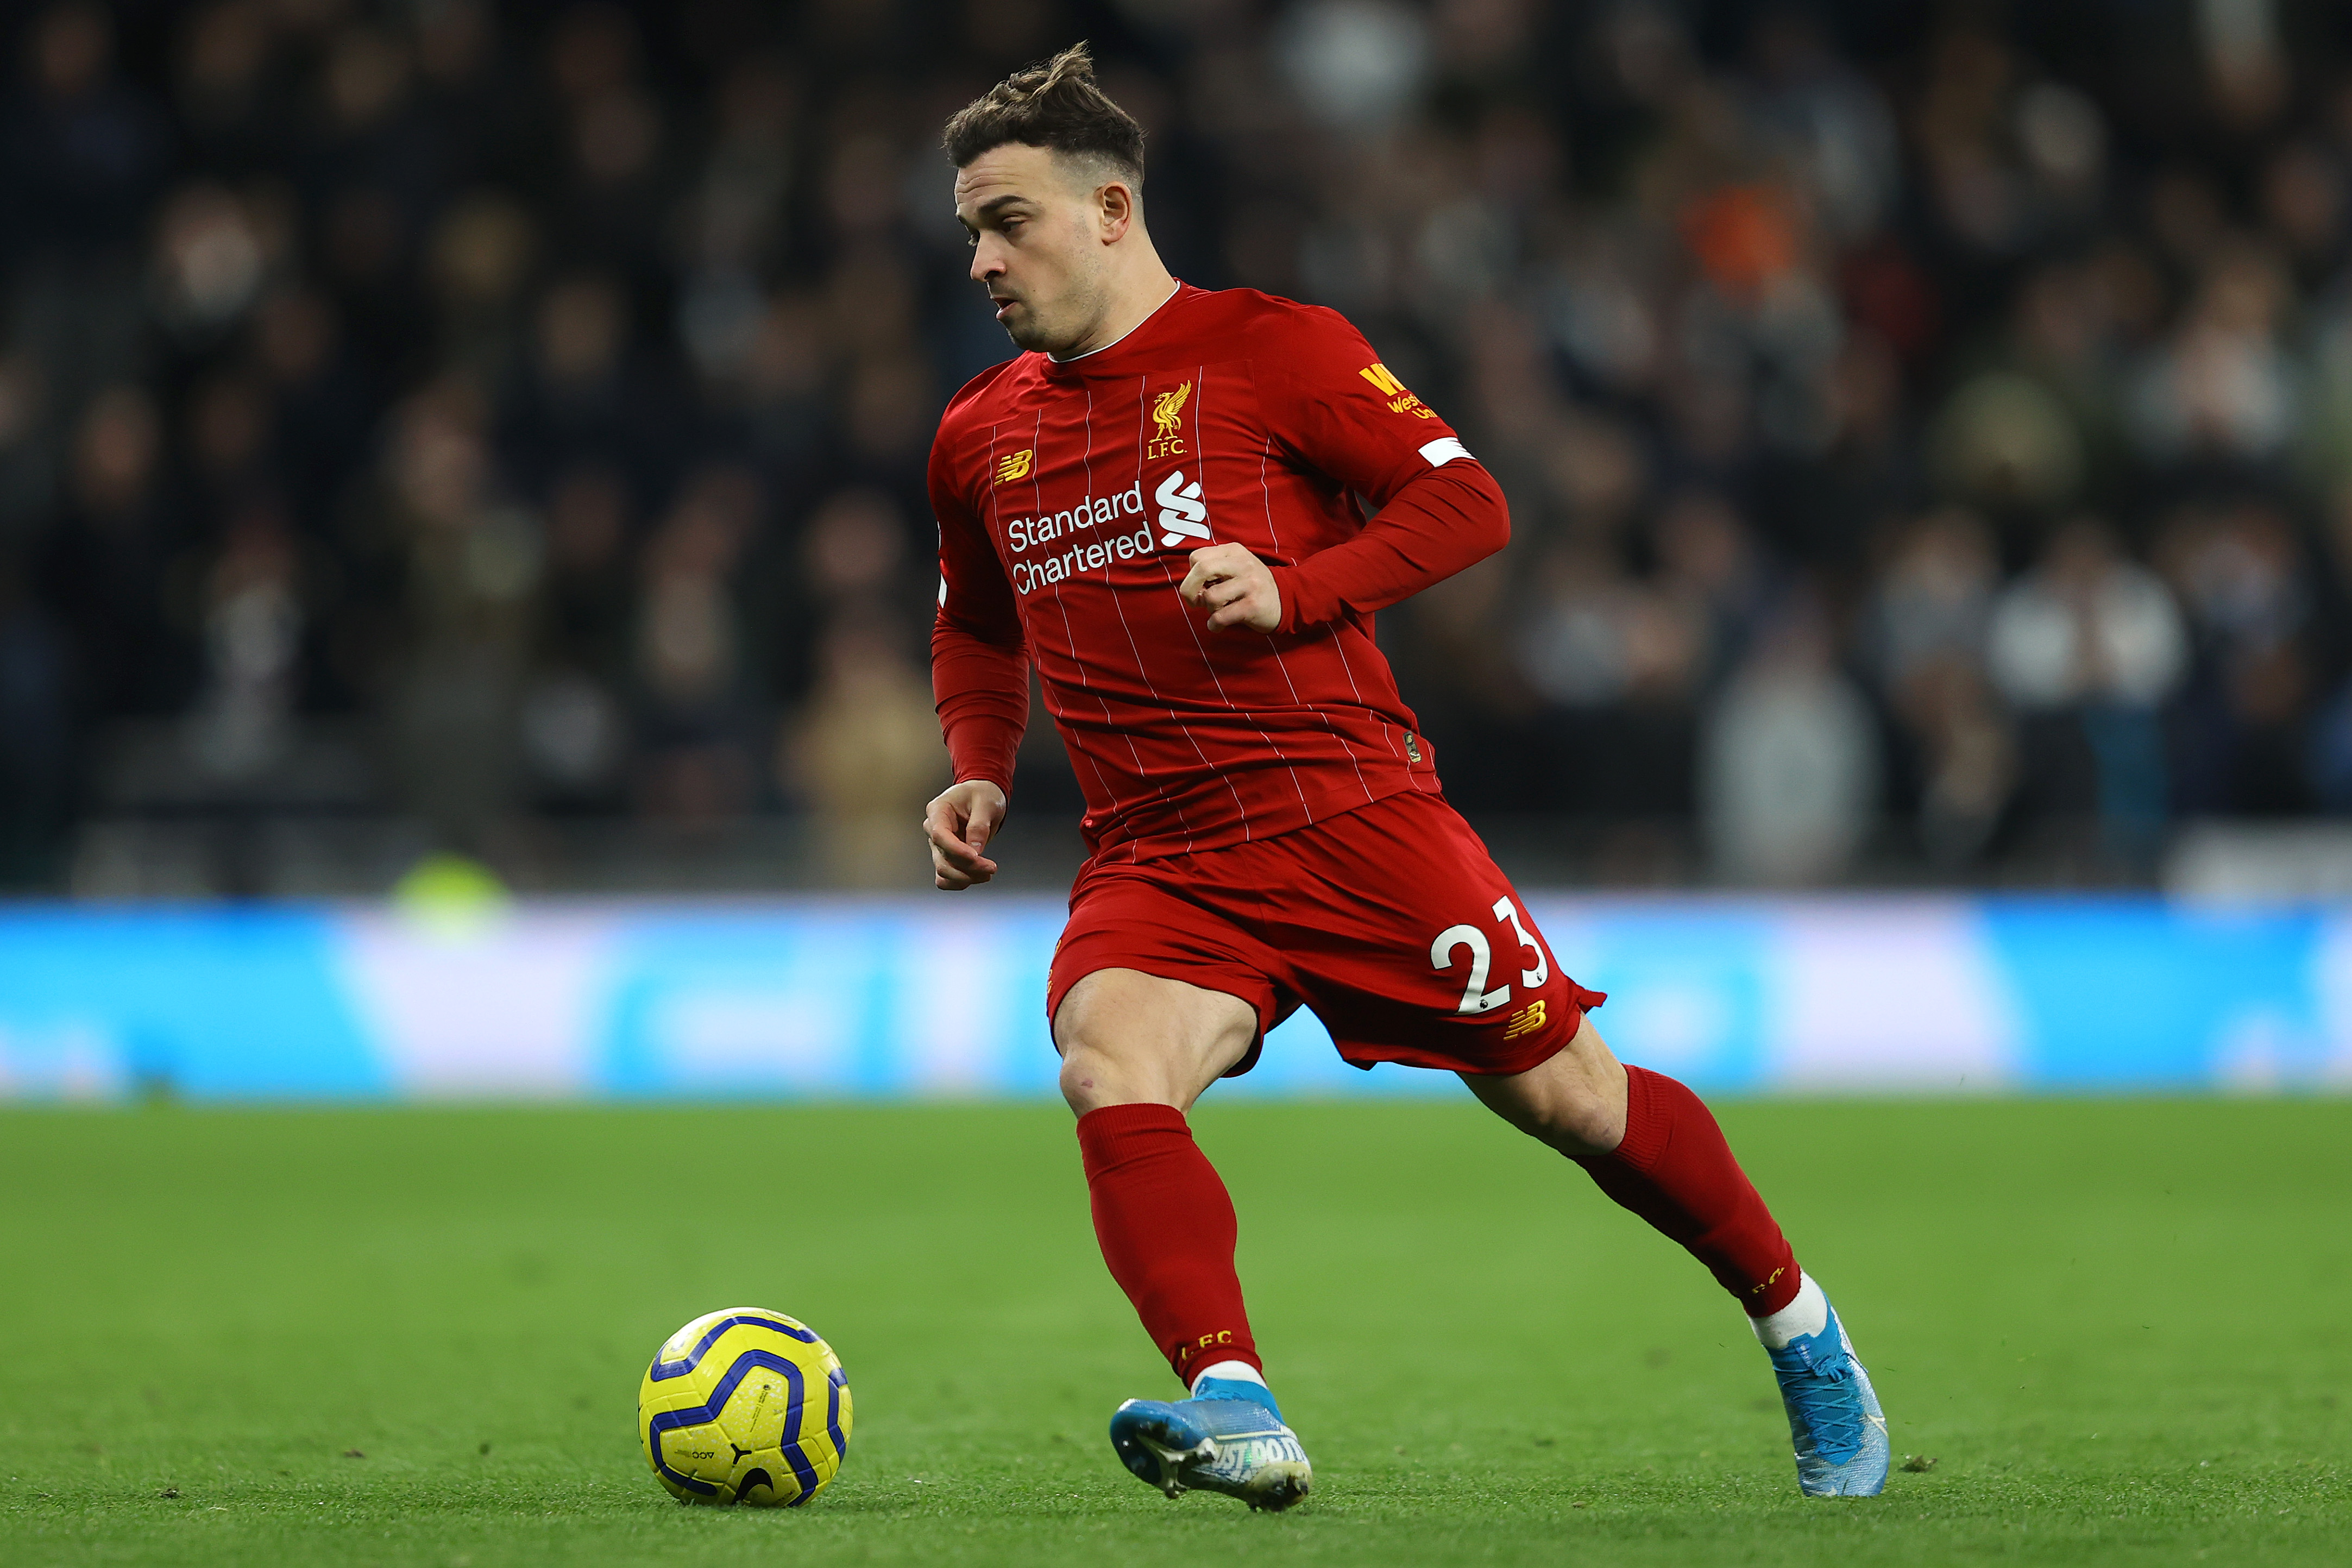 Shaqiri the only notable absentee for Liverpool (Photo by Richard Heathcote/Getty Images)